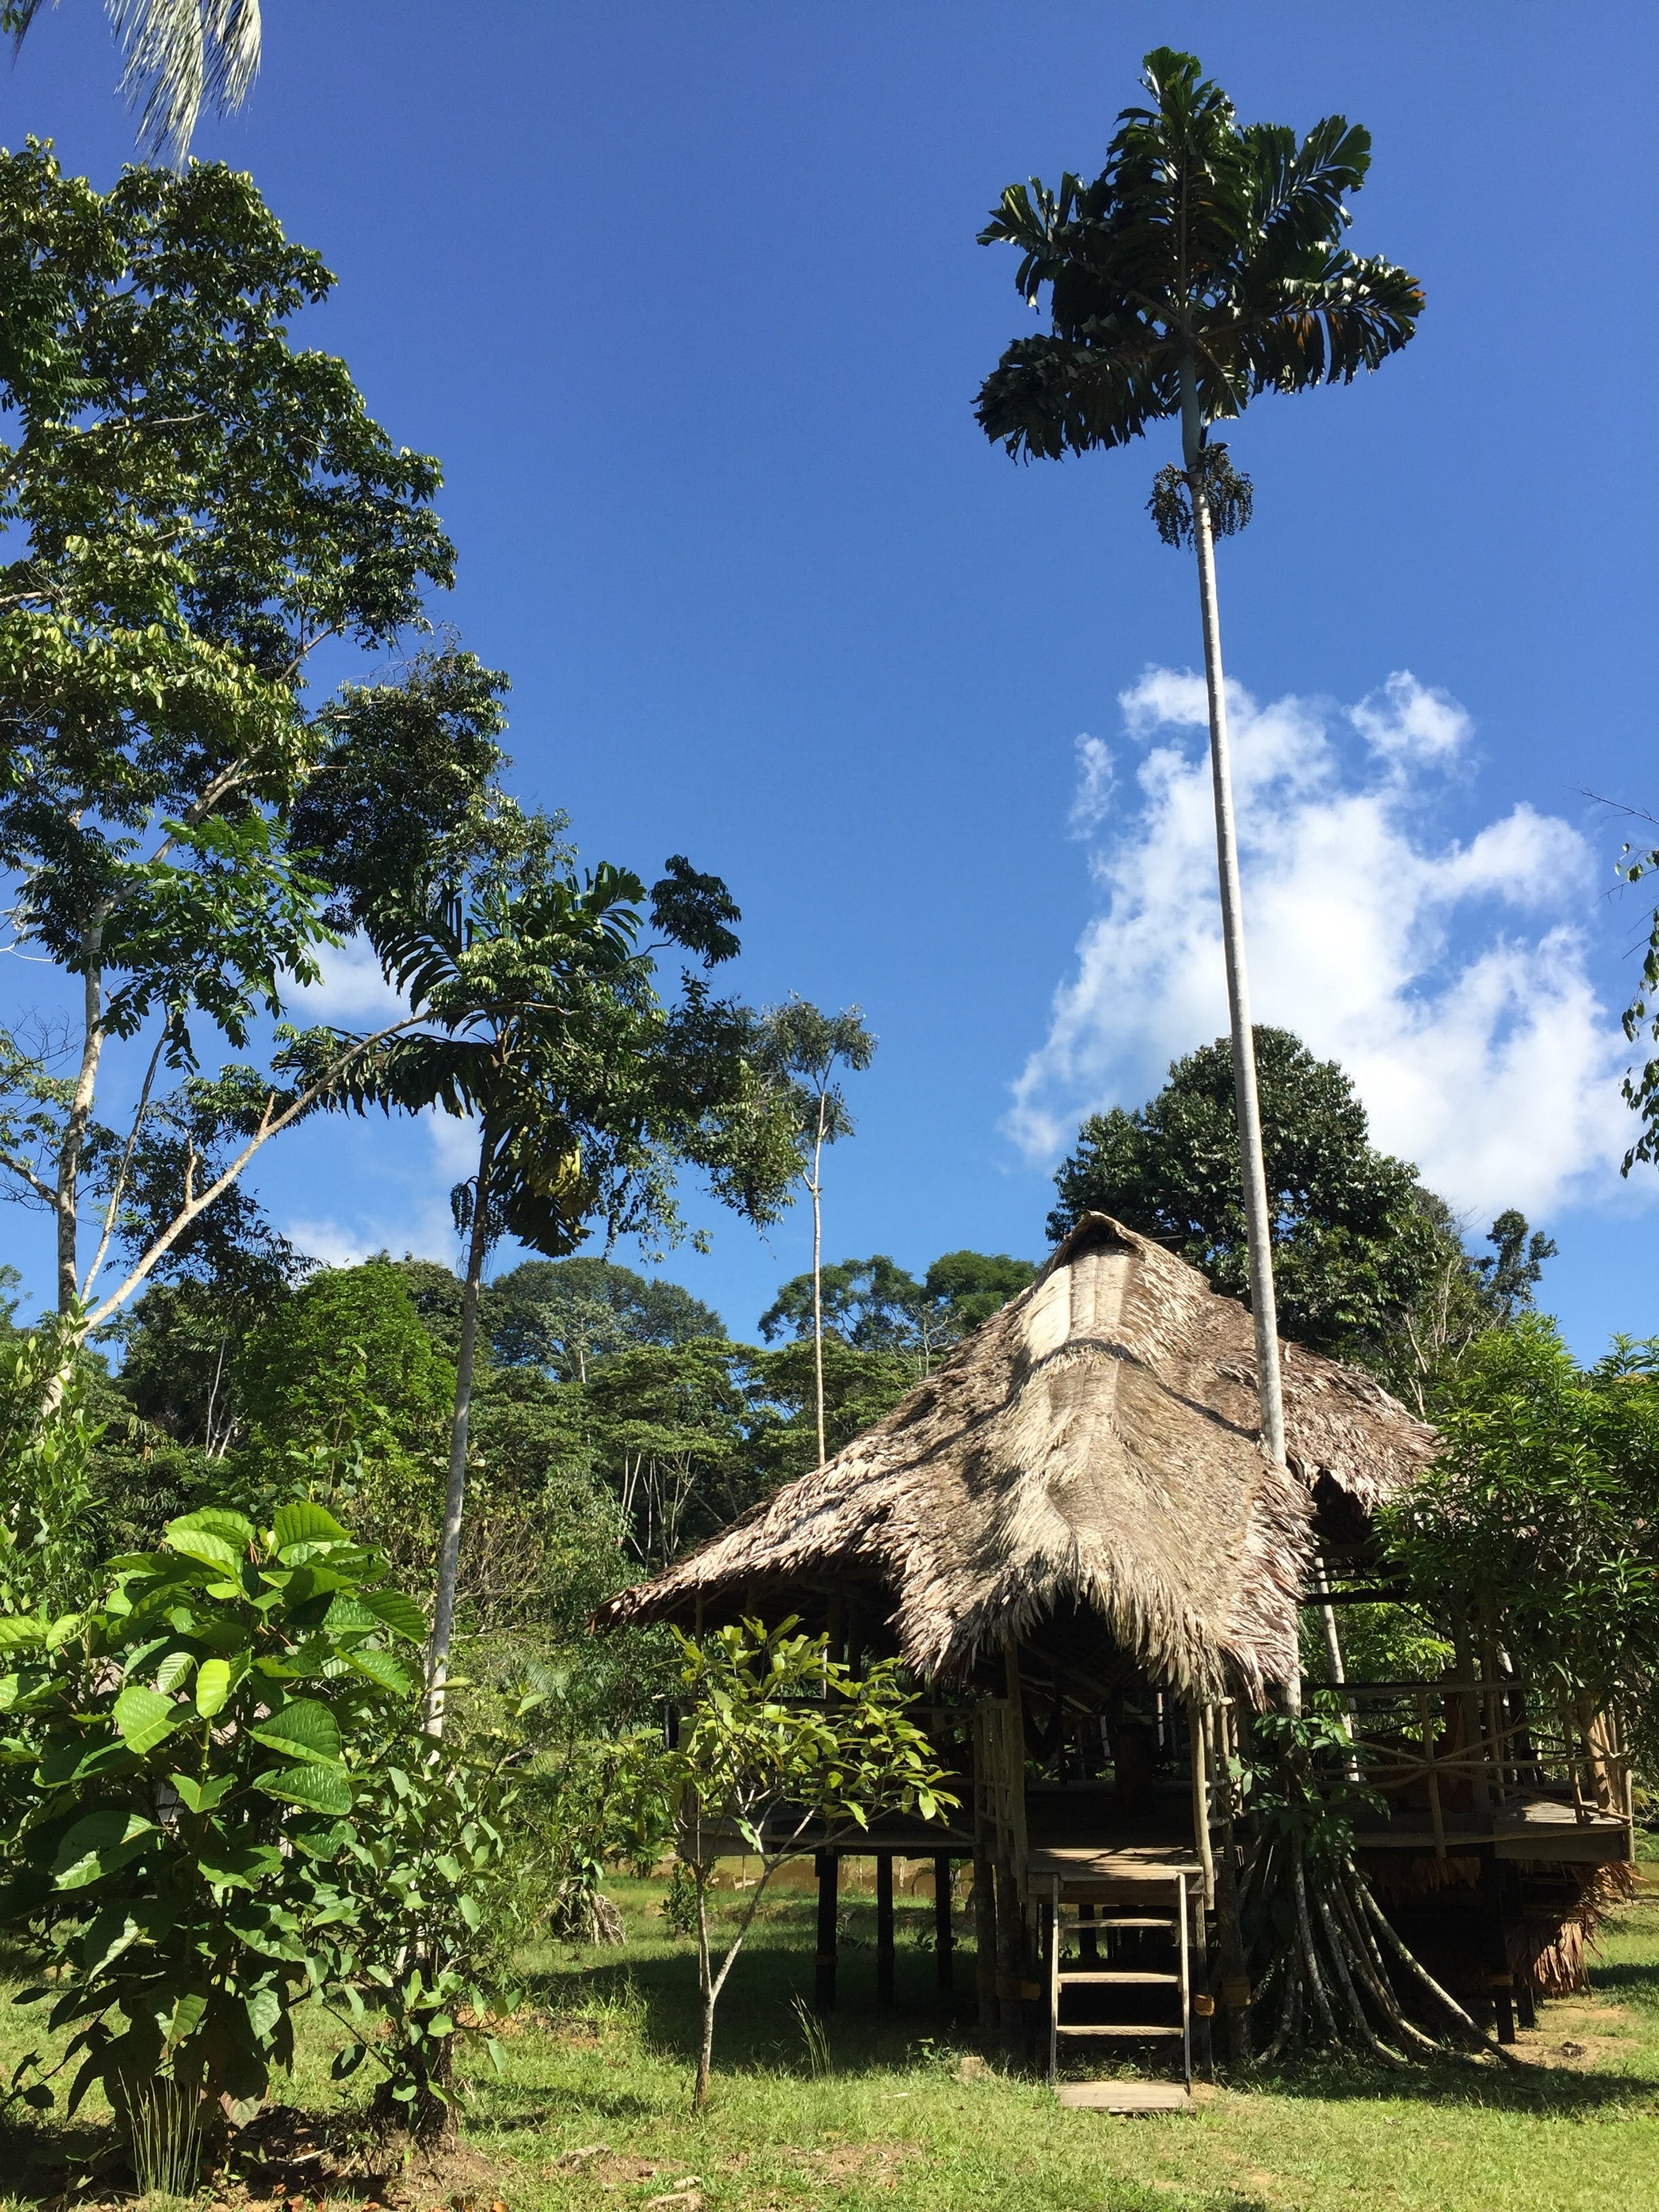 Free stock photo of Amazonian Jungle, DAS Ayahuasca Healing Center, Amazonian